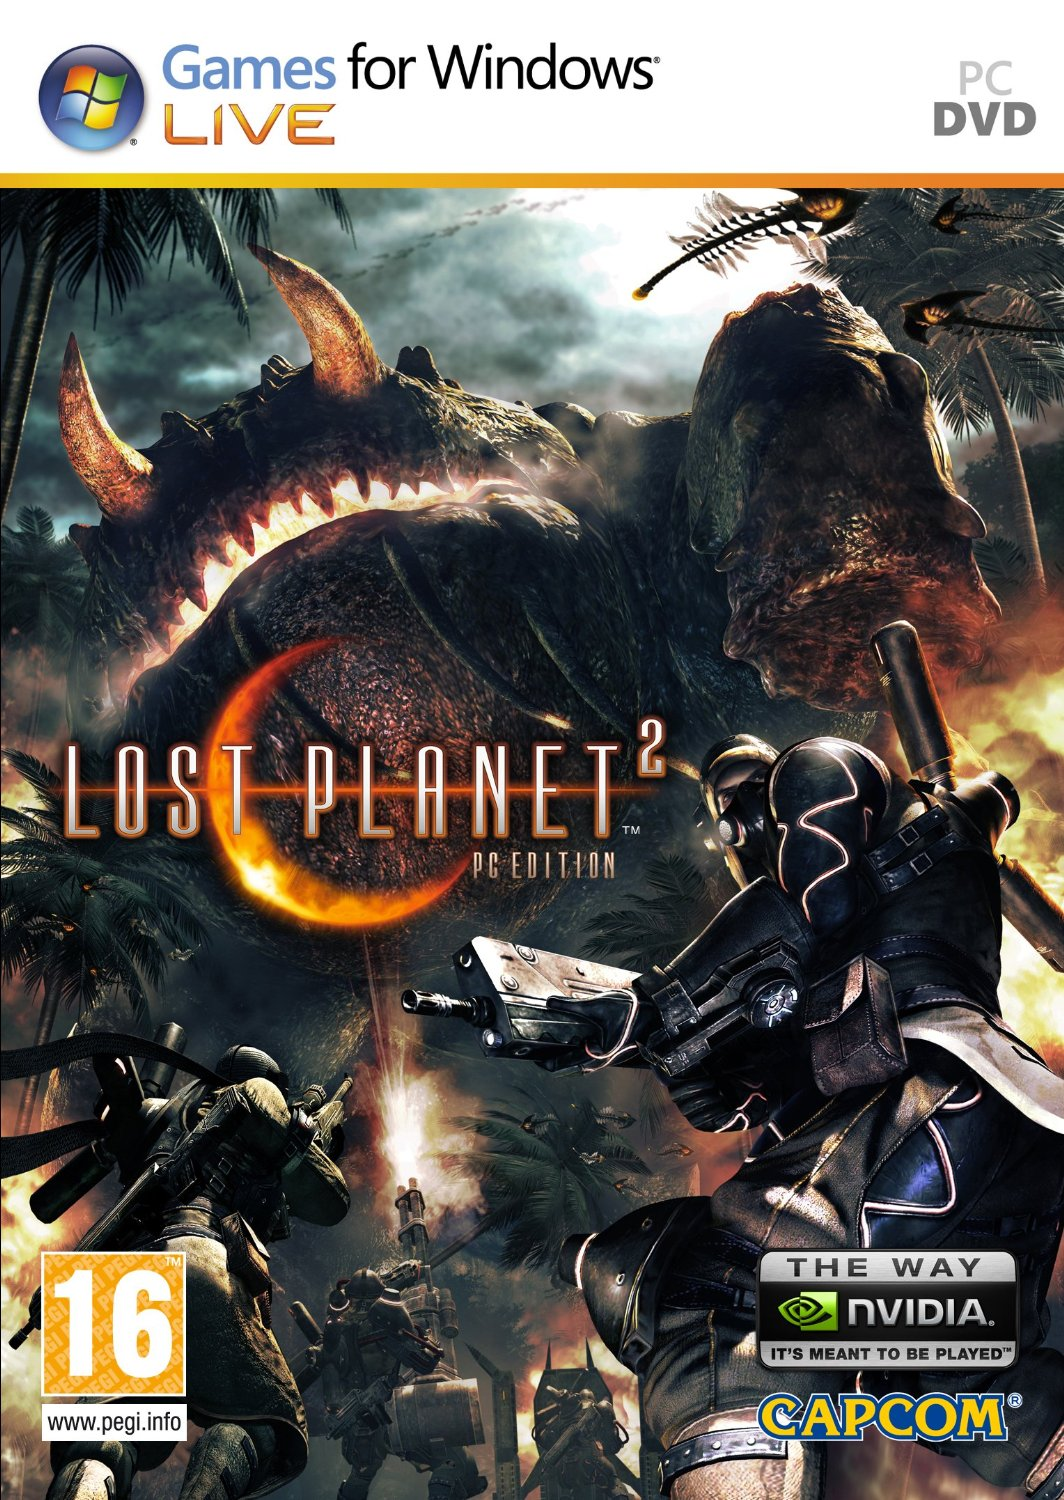 Lost Planet 2 (Steam Gift / Region Free) + Bonus